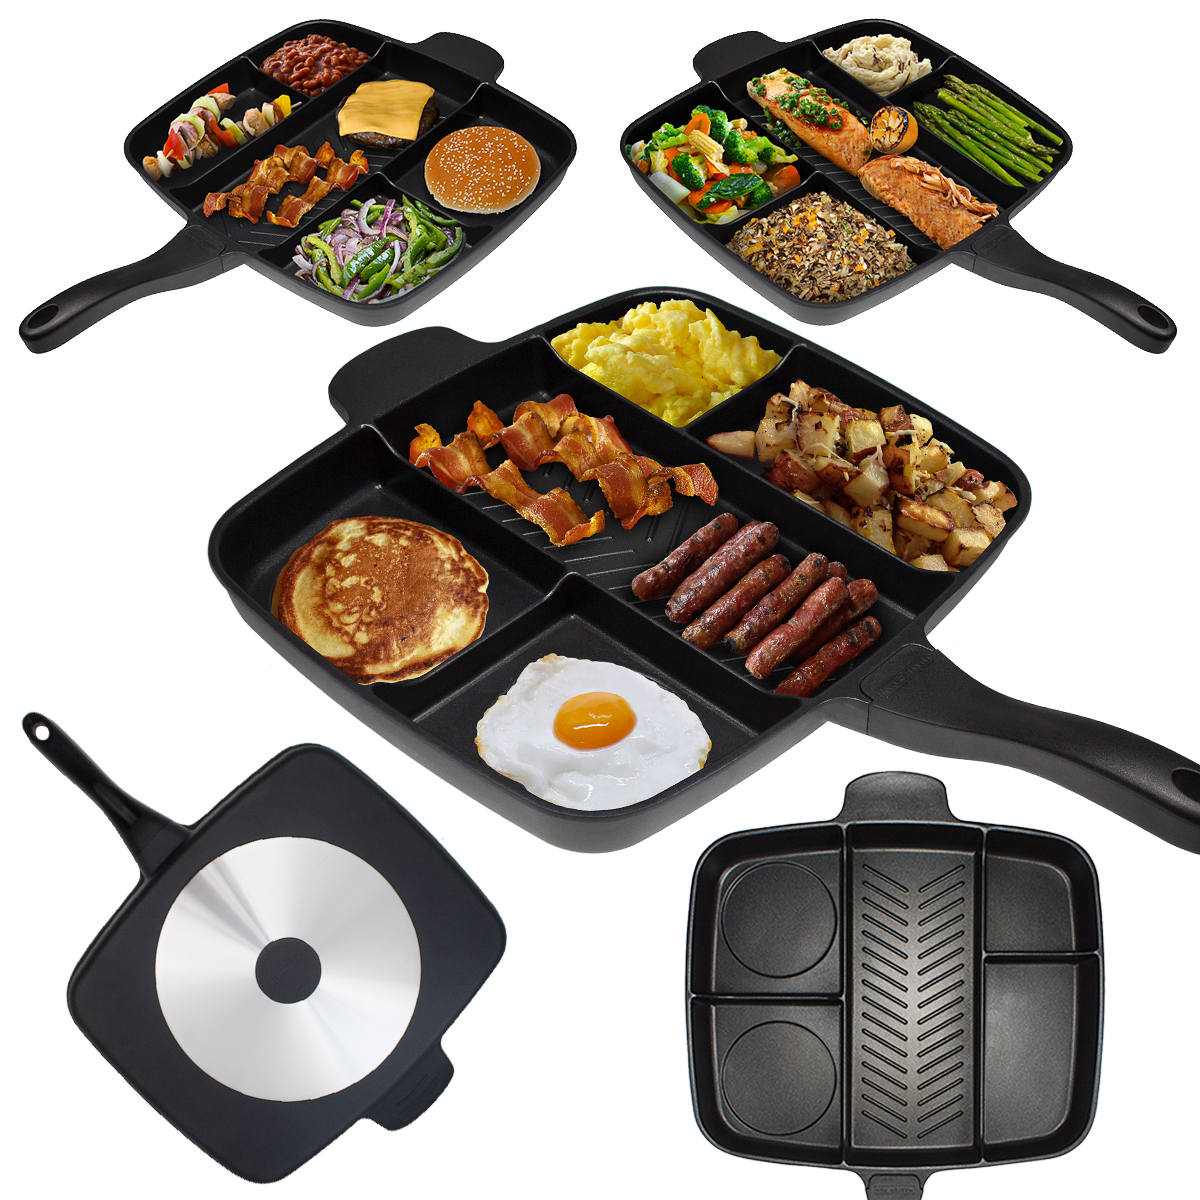 "The Master Pan Non-Stick Divided Meal Skillet 15"" Grill Fry Oven/Dishwasher Safe"